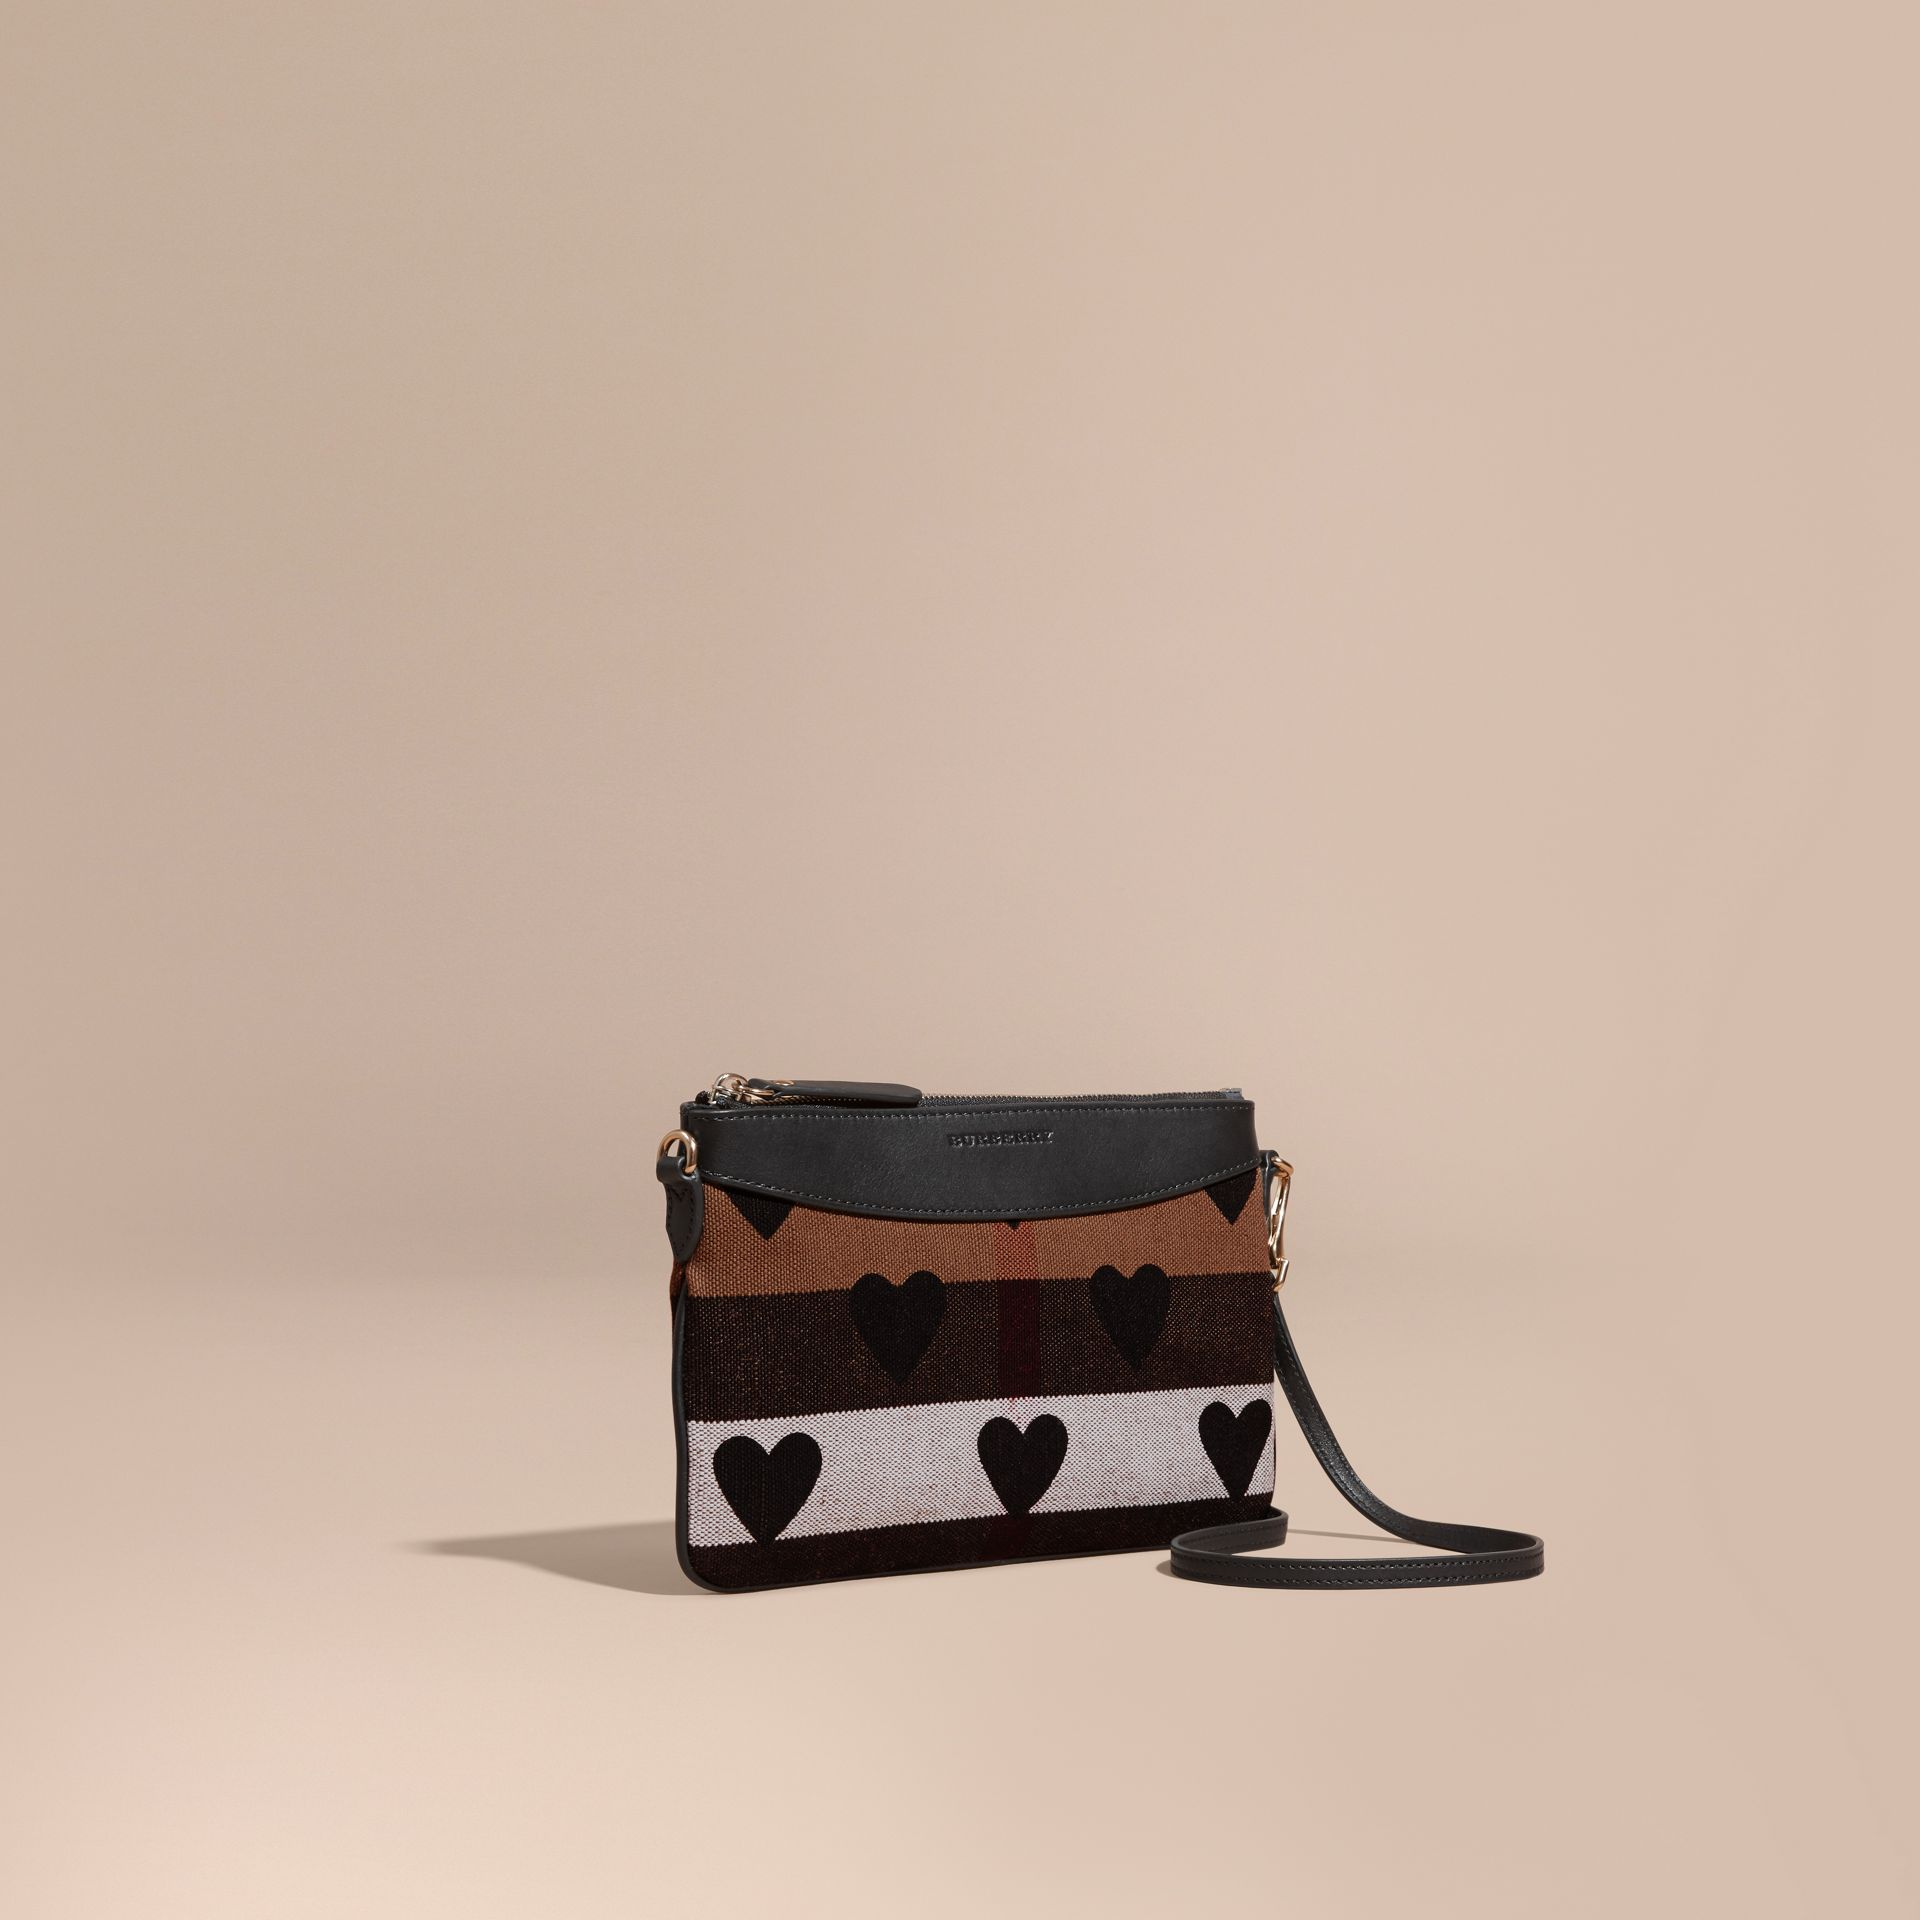 Black Heart Print Canvas Check Clutch Bag Black - gallery image 1